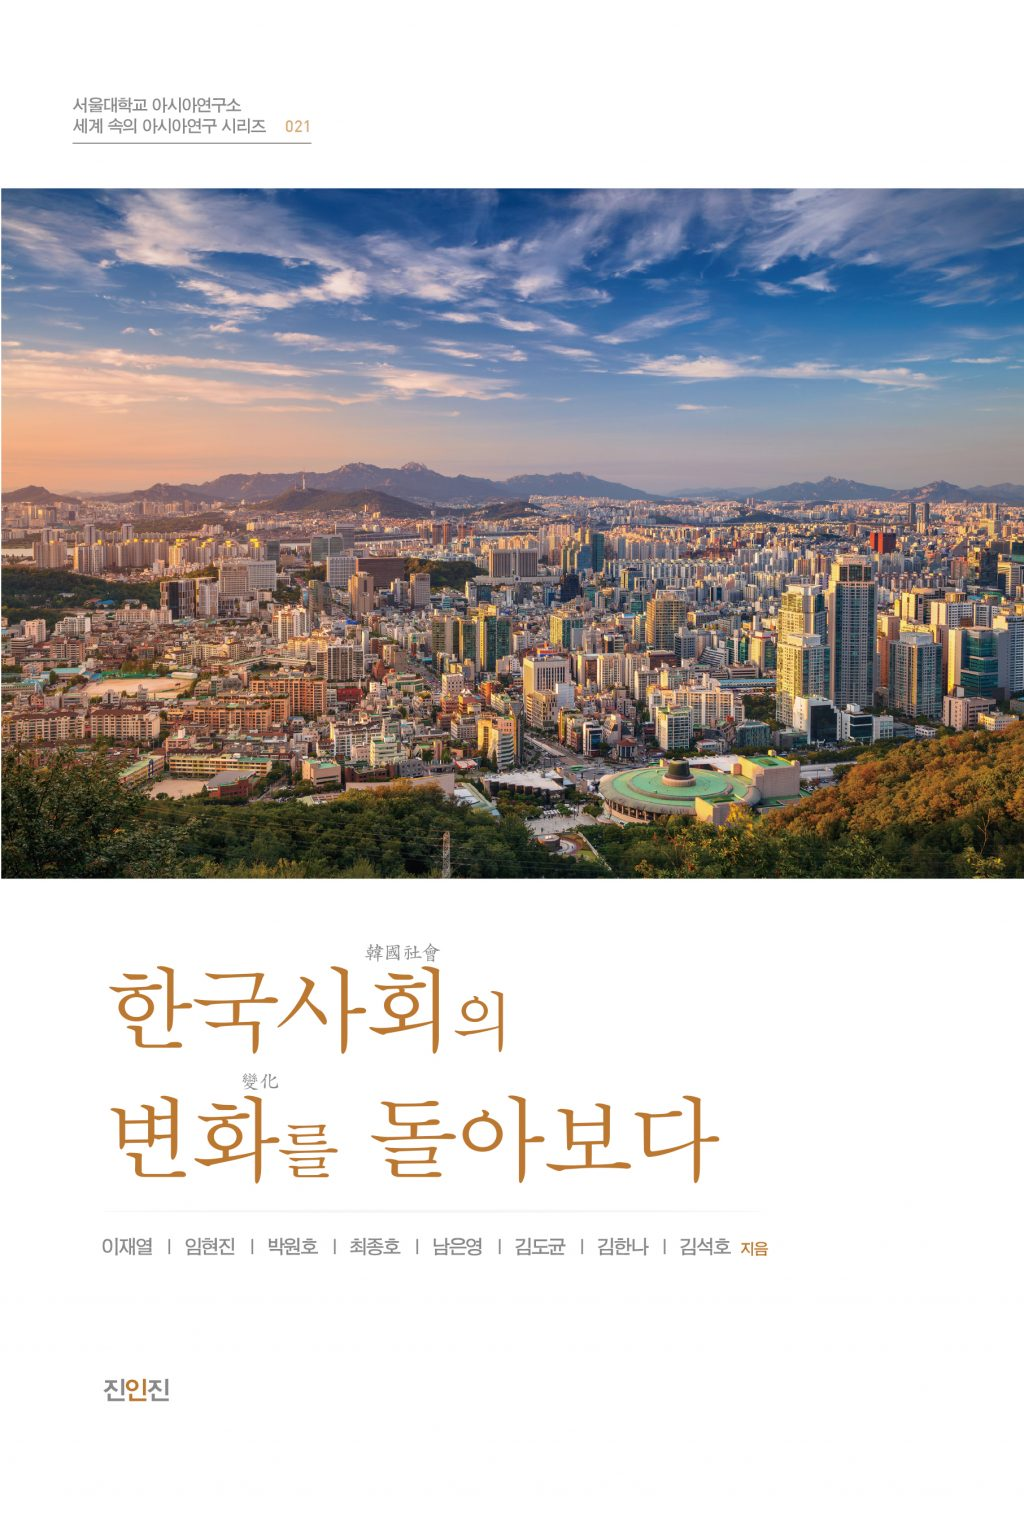 Tracing the 70 Years of Social Change in Korea